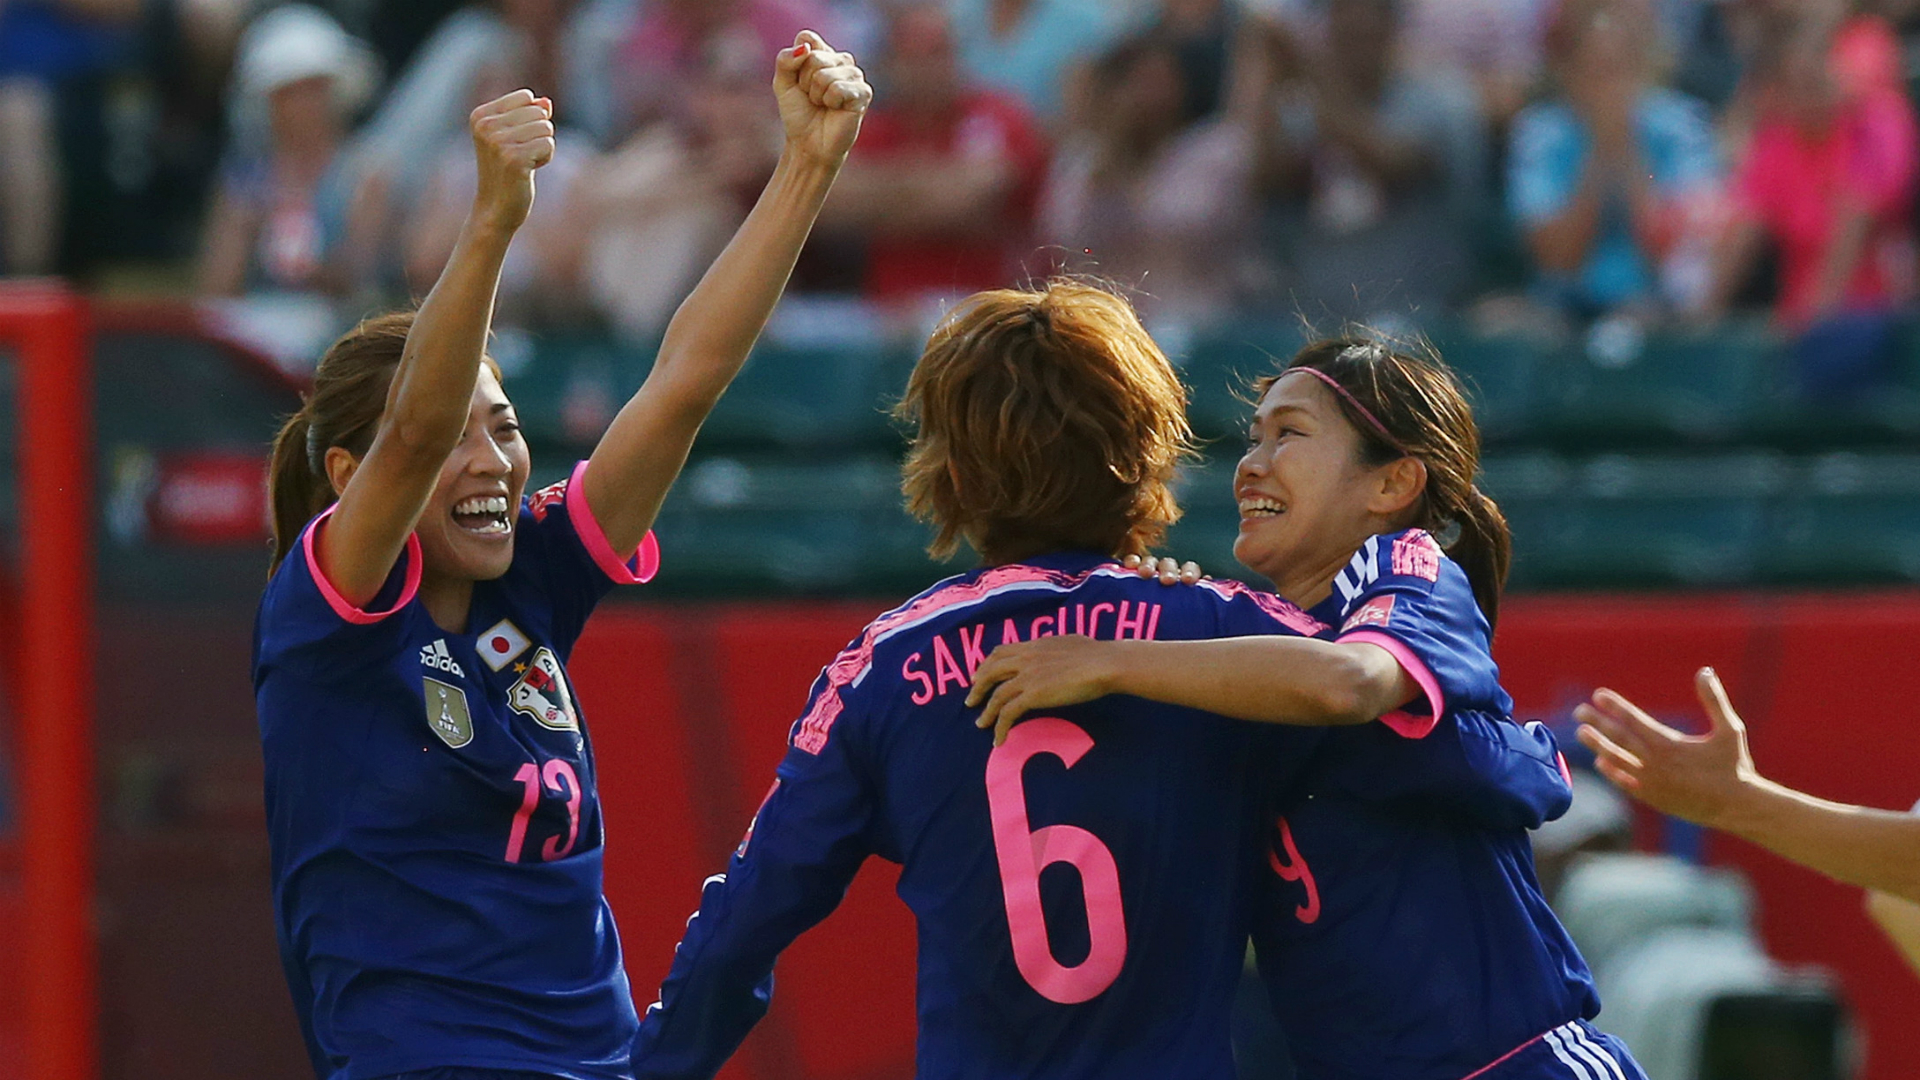 Women's World Cup: Japan advances to face U.S. on England's devastating own goal